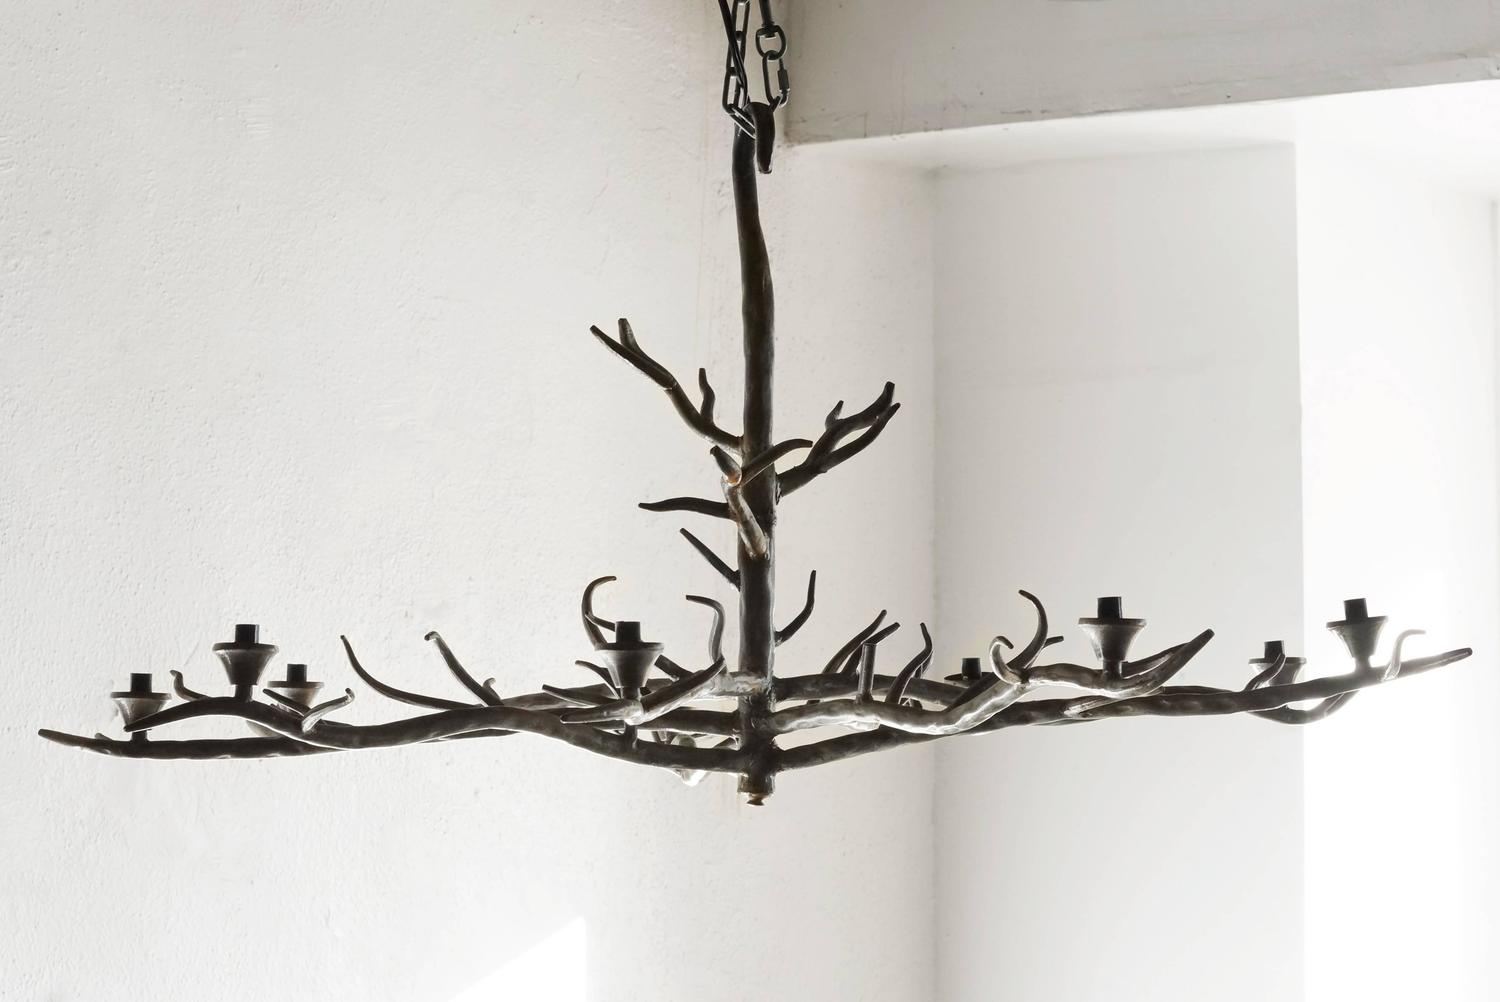 Handmade Tree Branch Chandelier Steel at 1stdibs